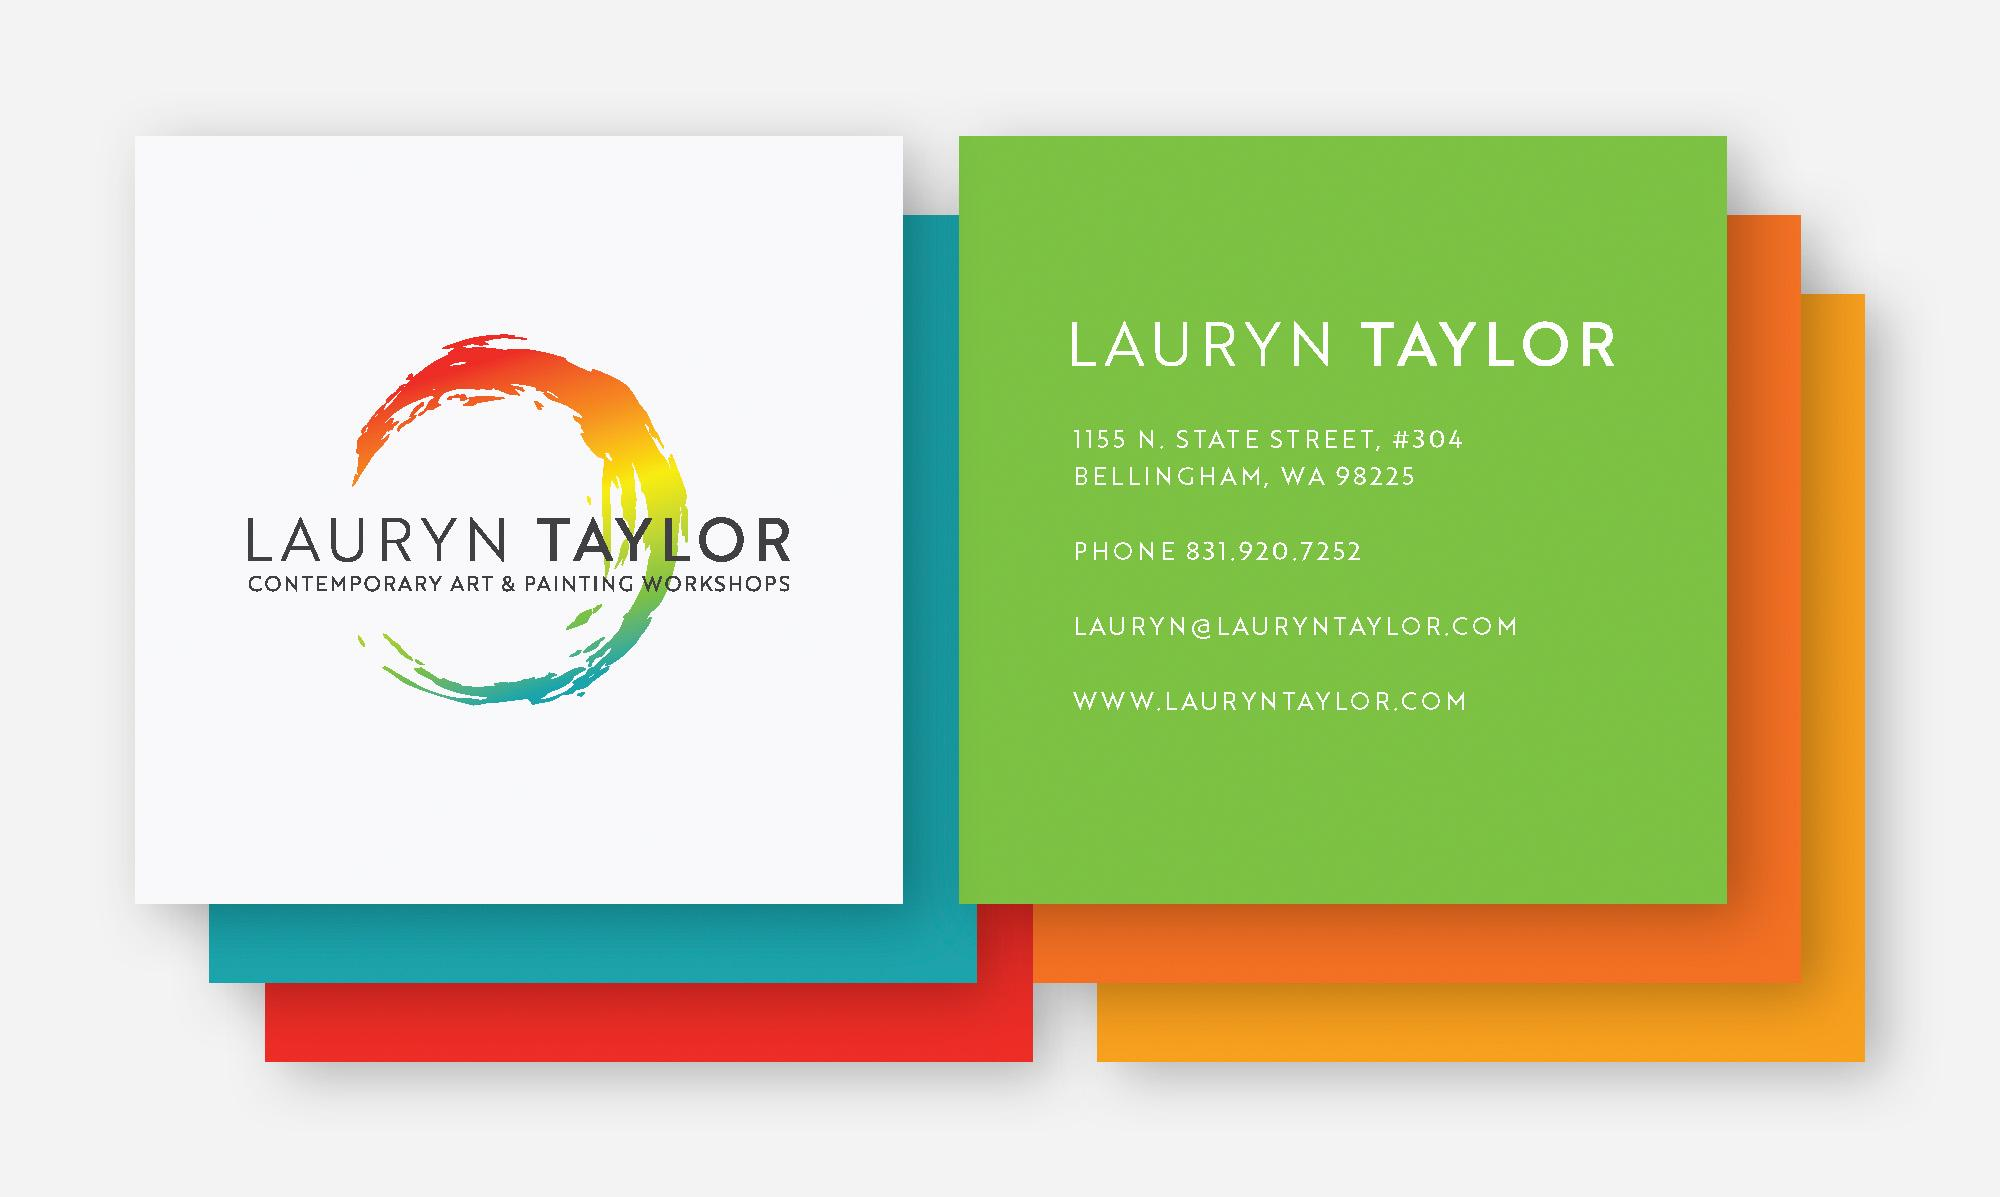 Lauryn Taylor Business Cards